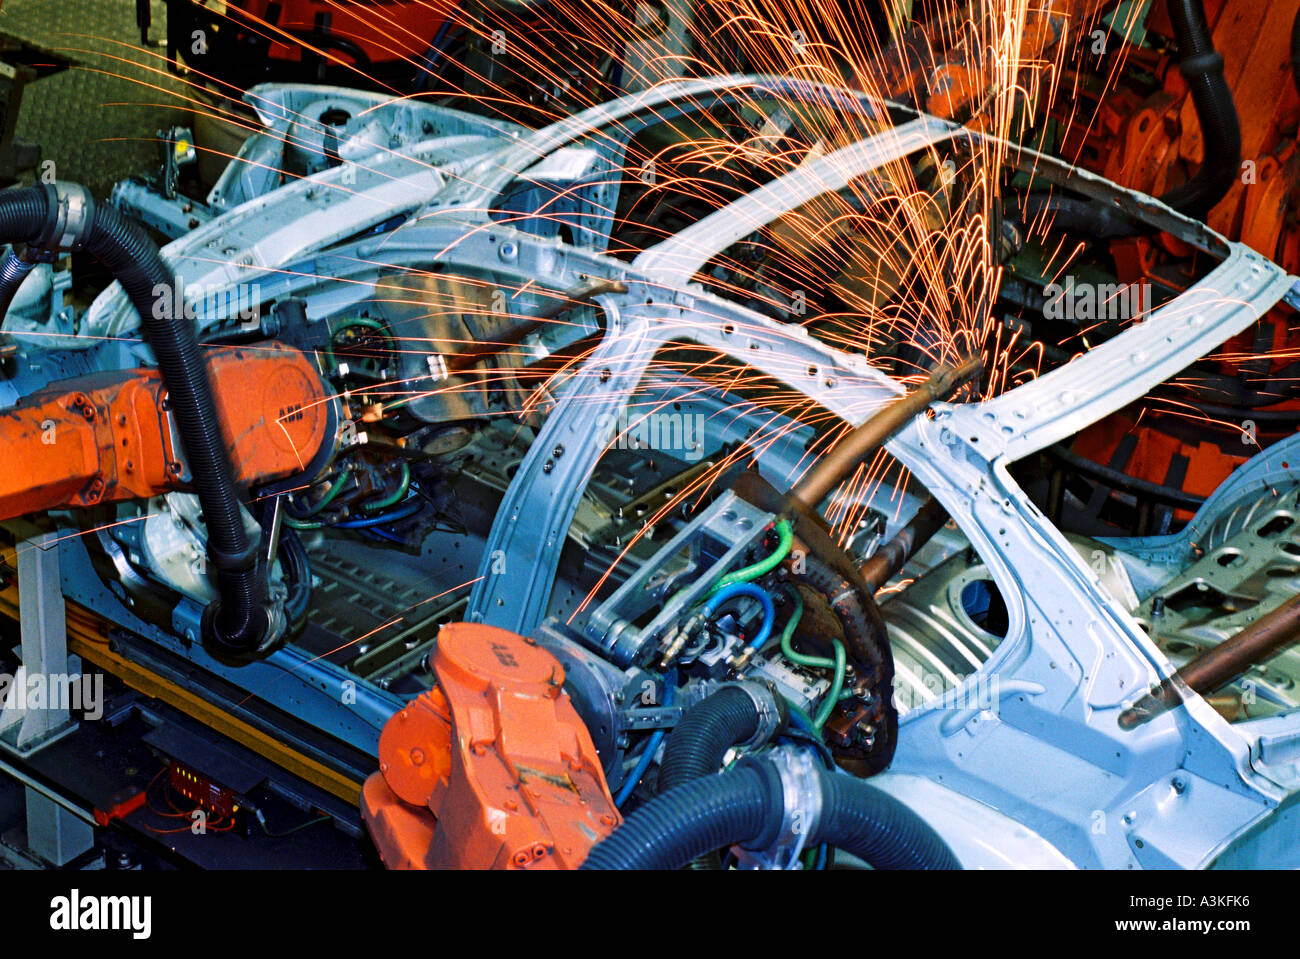 Industry robot robotics spot welding car production at BMW in Munich Bavaria Germany Stock Photo